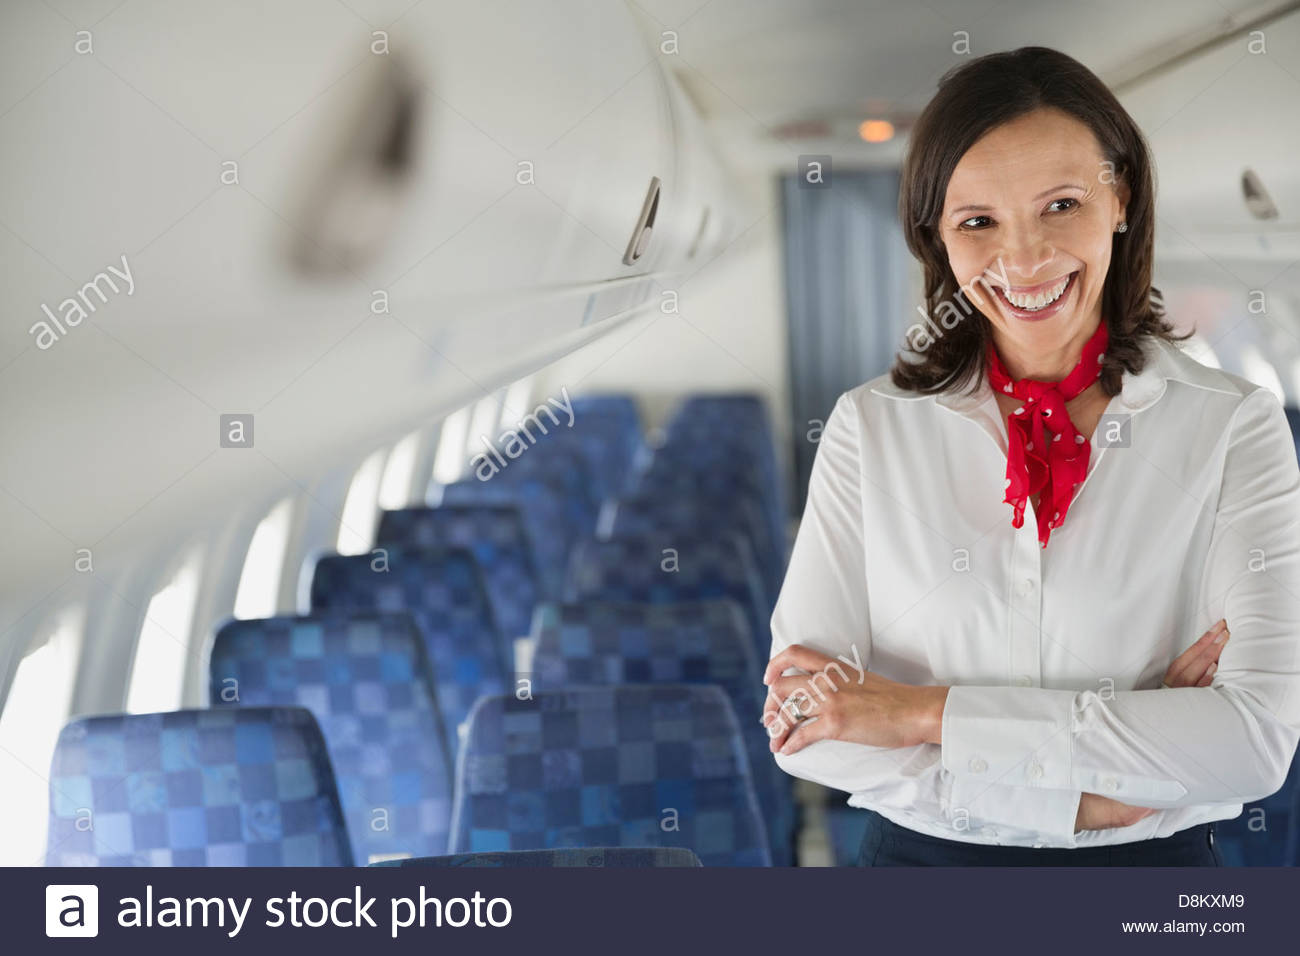 Flight attendant standing with arms crossed in airplane cabin - Stock Image